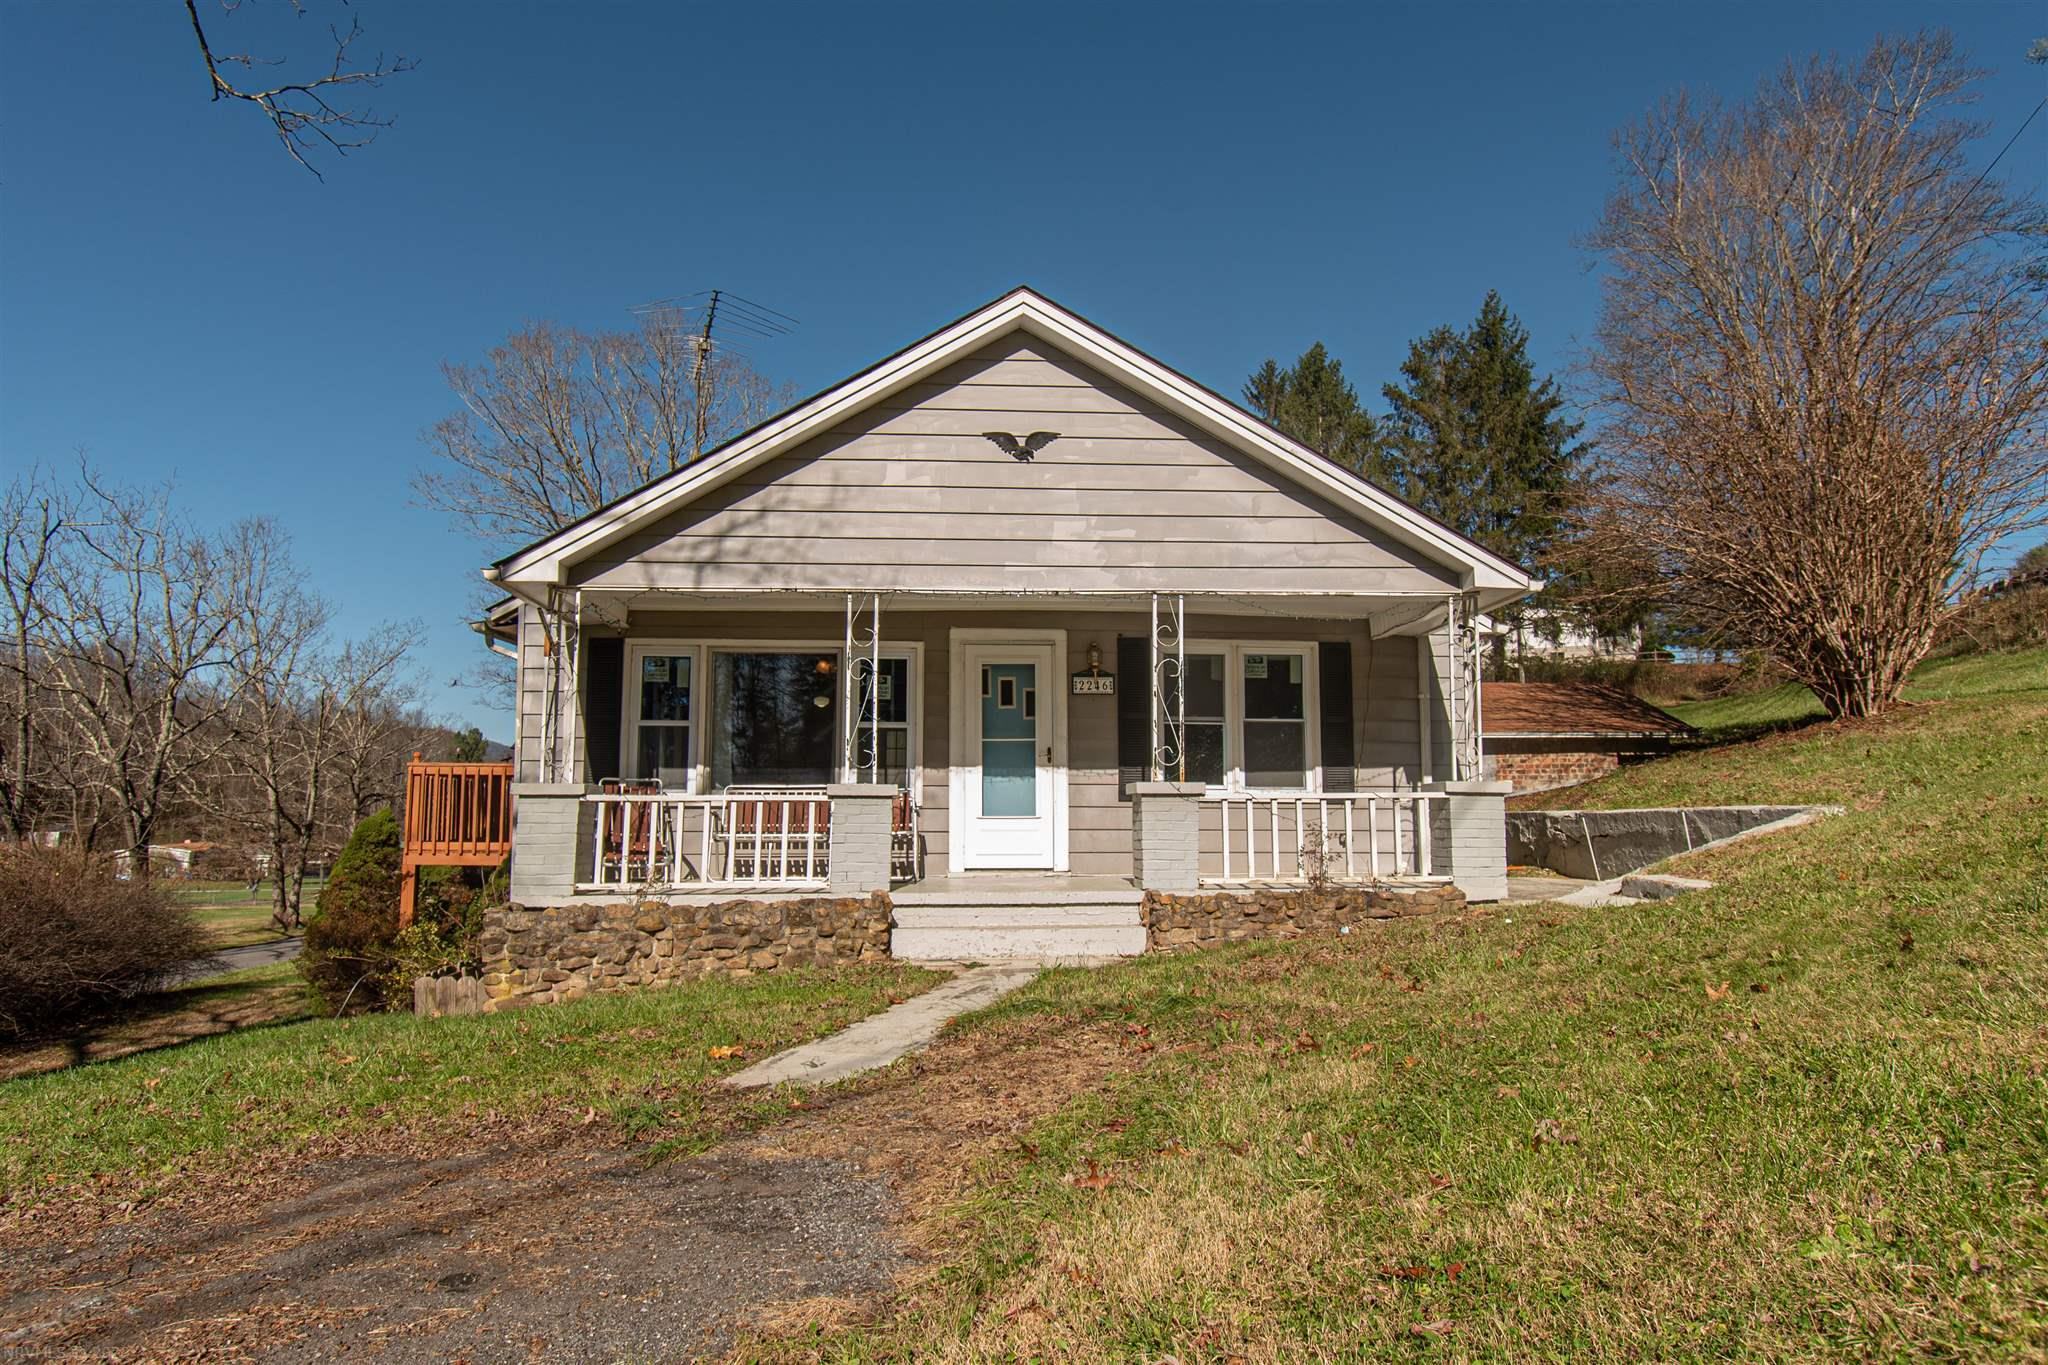 Very cozy cottage in the heart of Hiwassee. This one-level is everything you could want in a first home or rental property. Huge yard with  double detached garage, large deck and gazebo to entertain all your guest. New replacement windows , French doors accessing the front deck and new heat pump.  This home is also 5 minute walk from the lake .